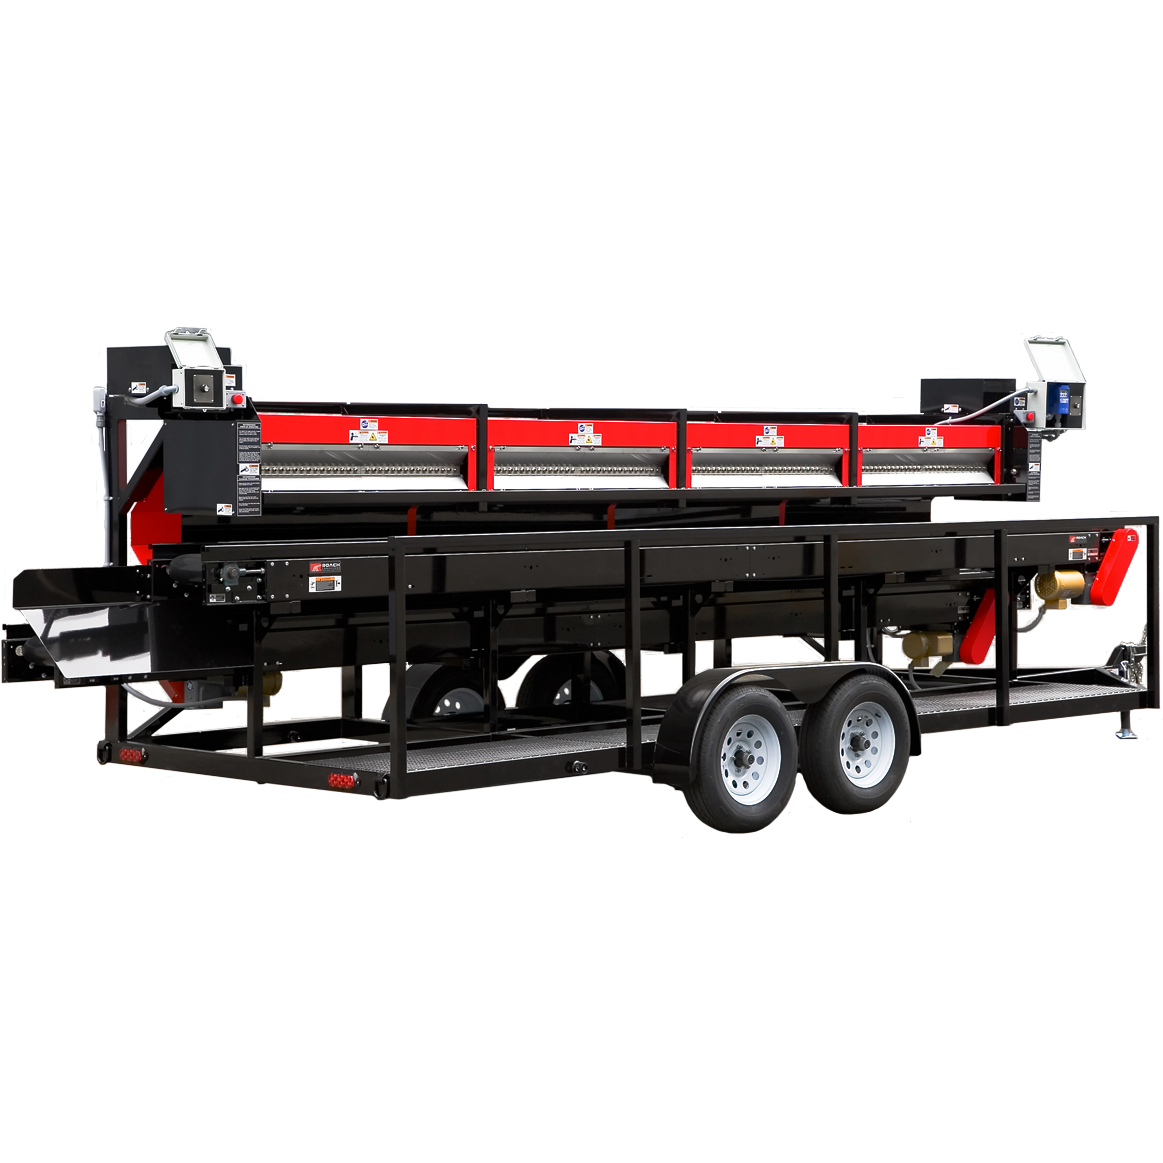 Trimleaf Centurion Pro XL MegaBucker Debudder & Bucking Machine